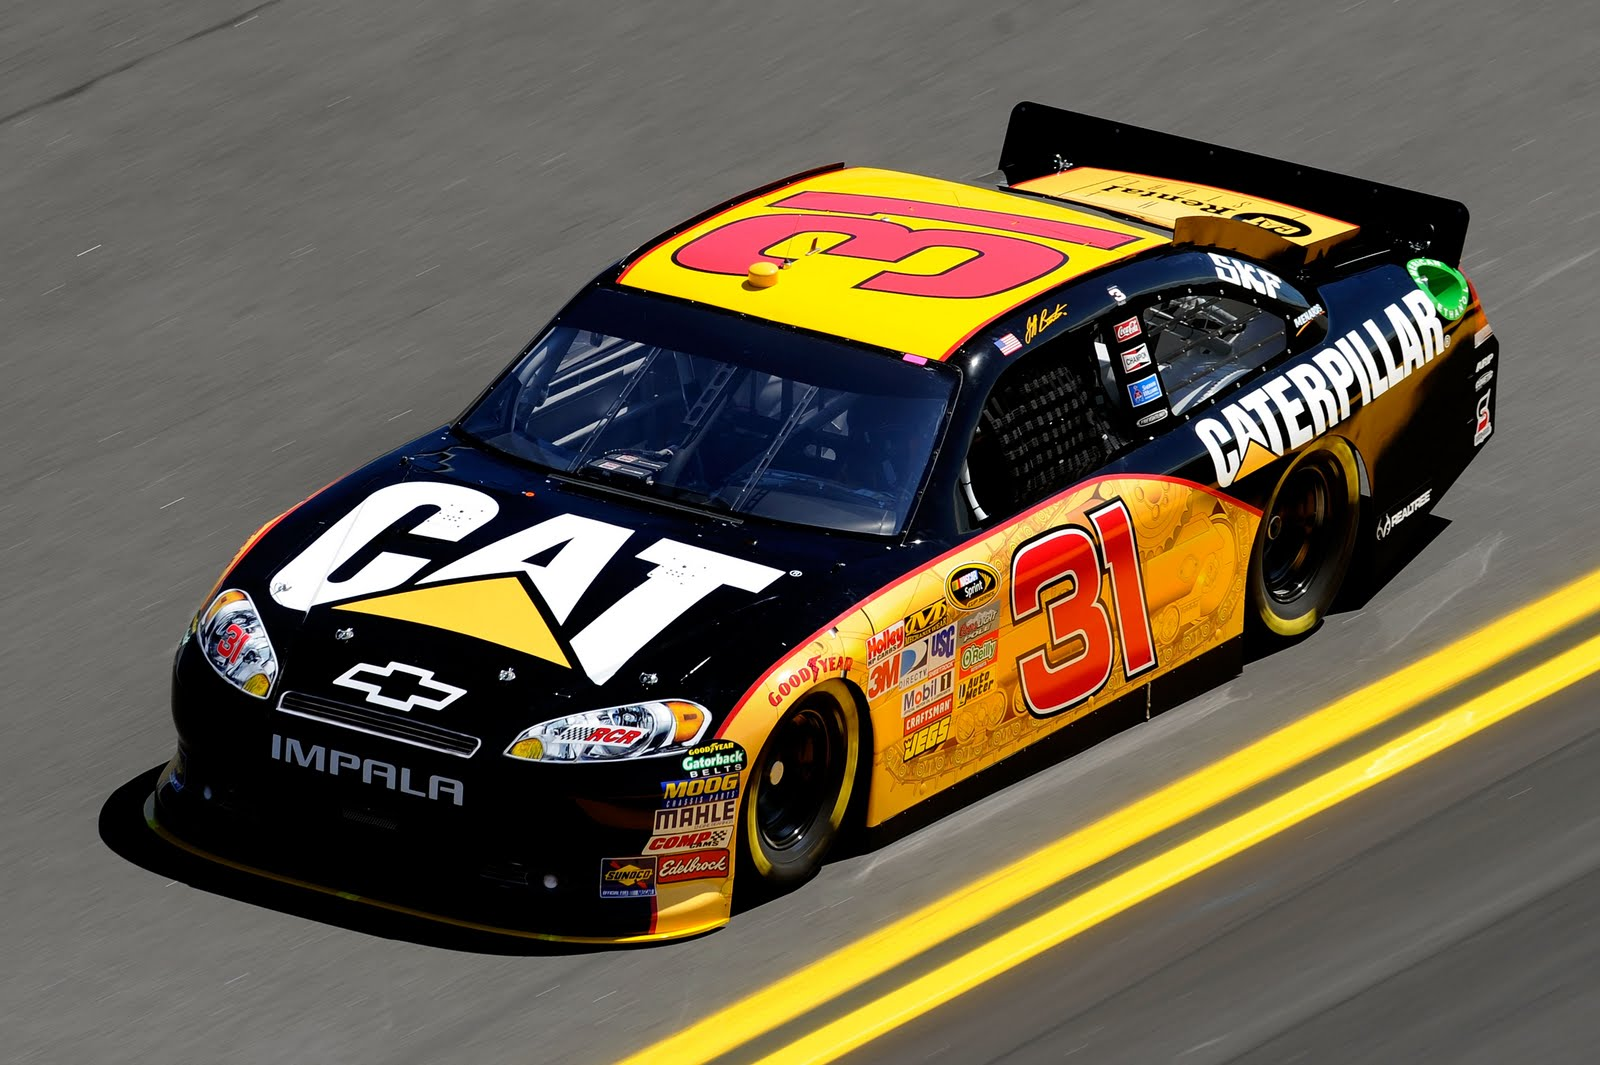 Who Is Driving Cars  Paint Scheme Car In Nascar